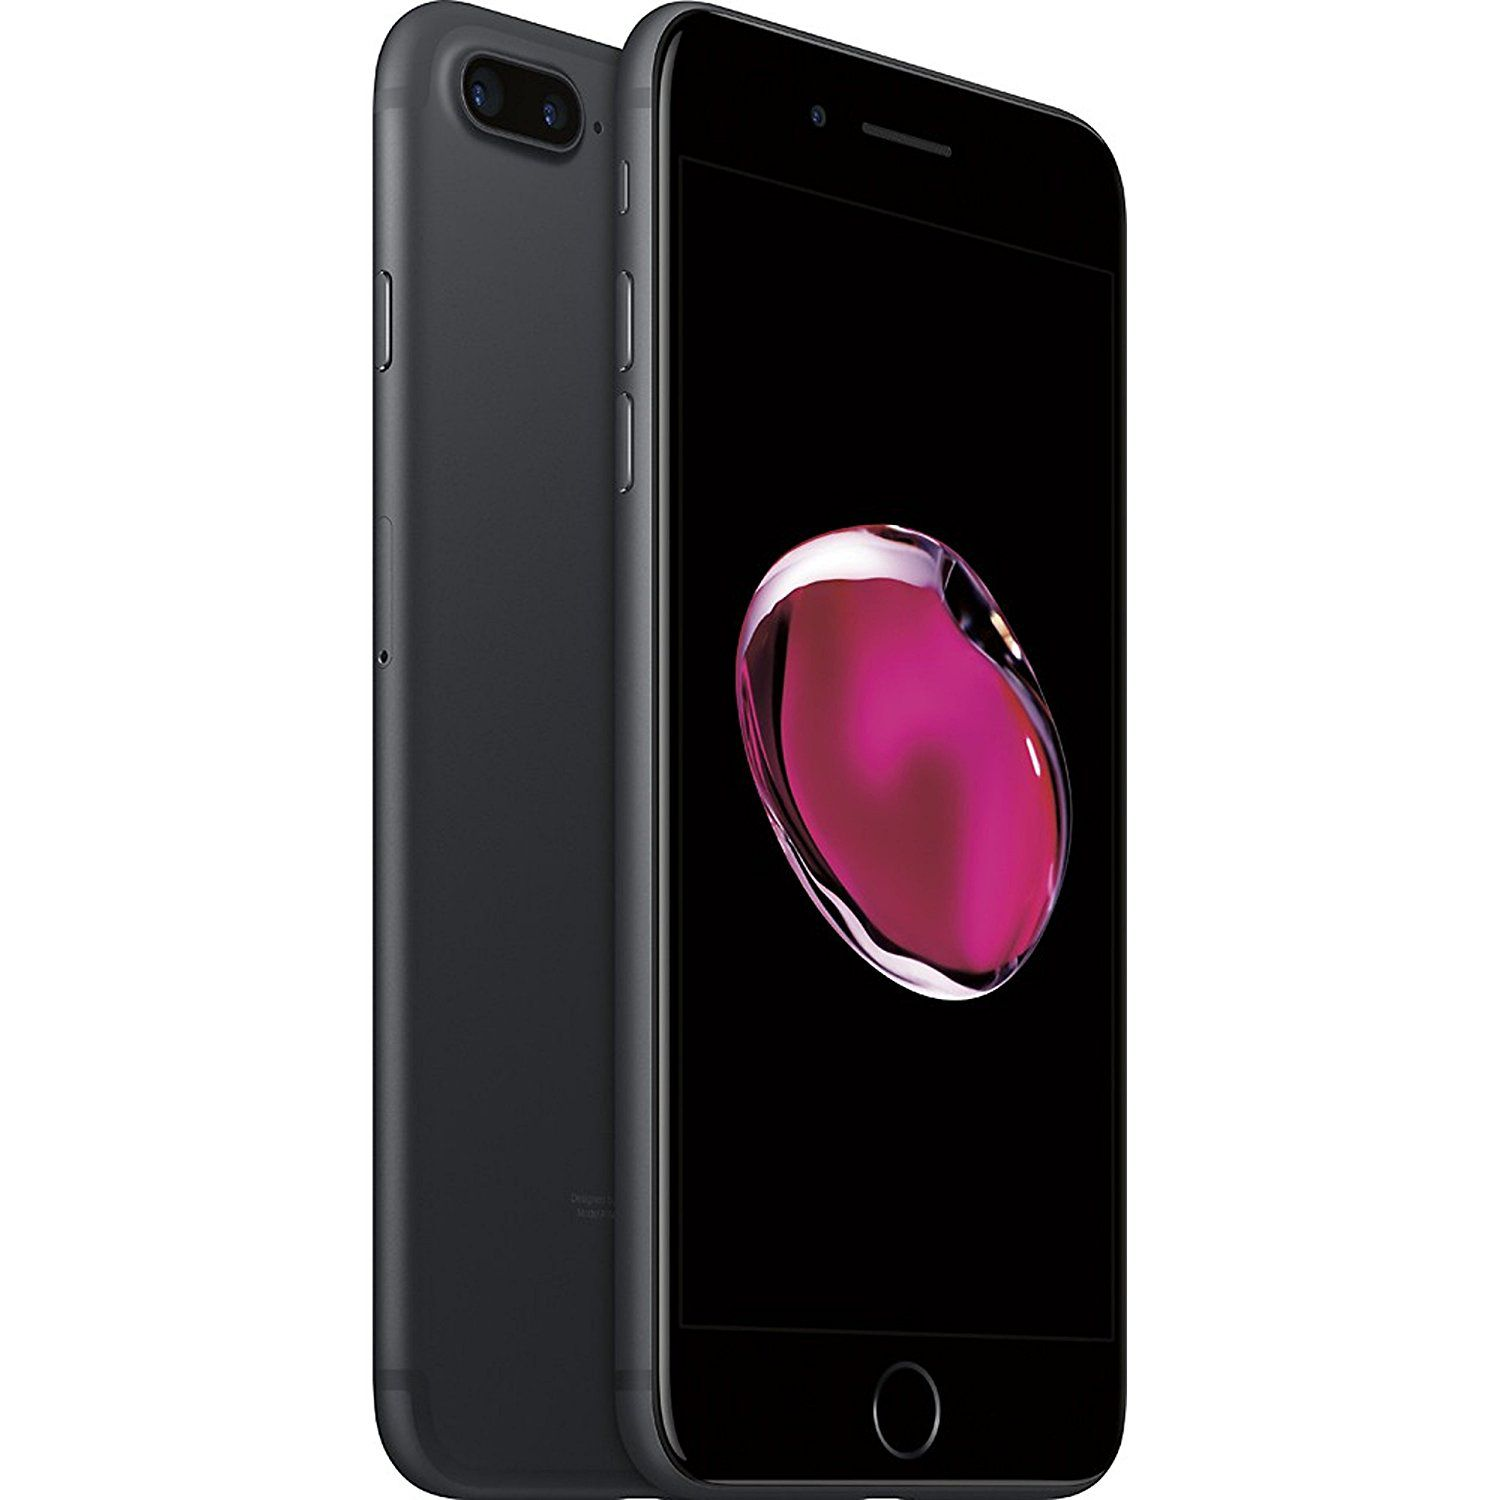 CELULAR APPLE IPHONE 7 PLUS 128GB PRETO